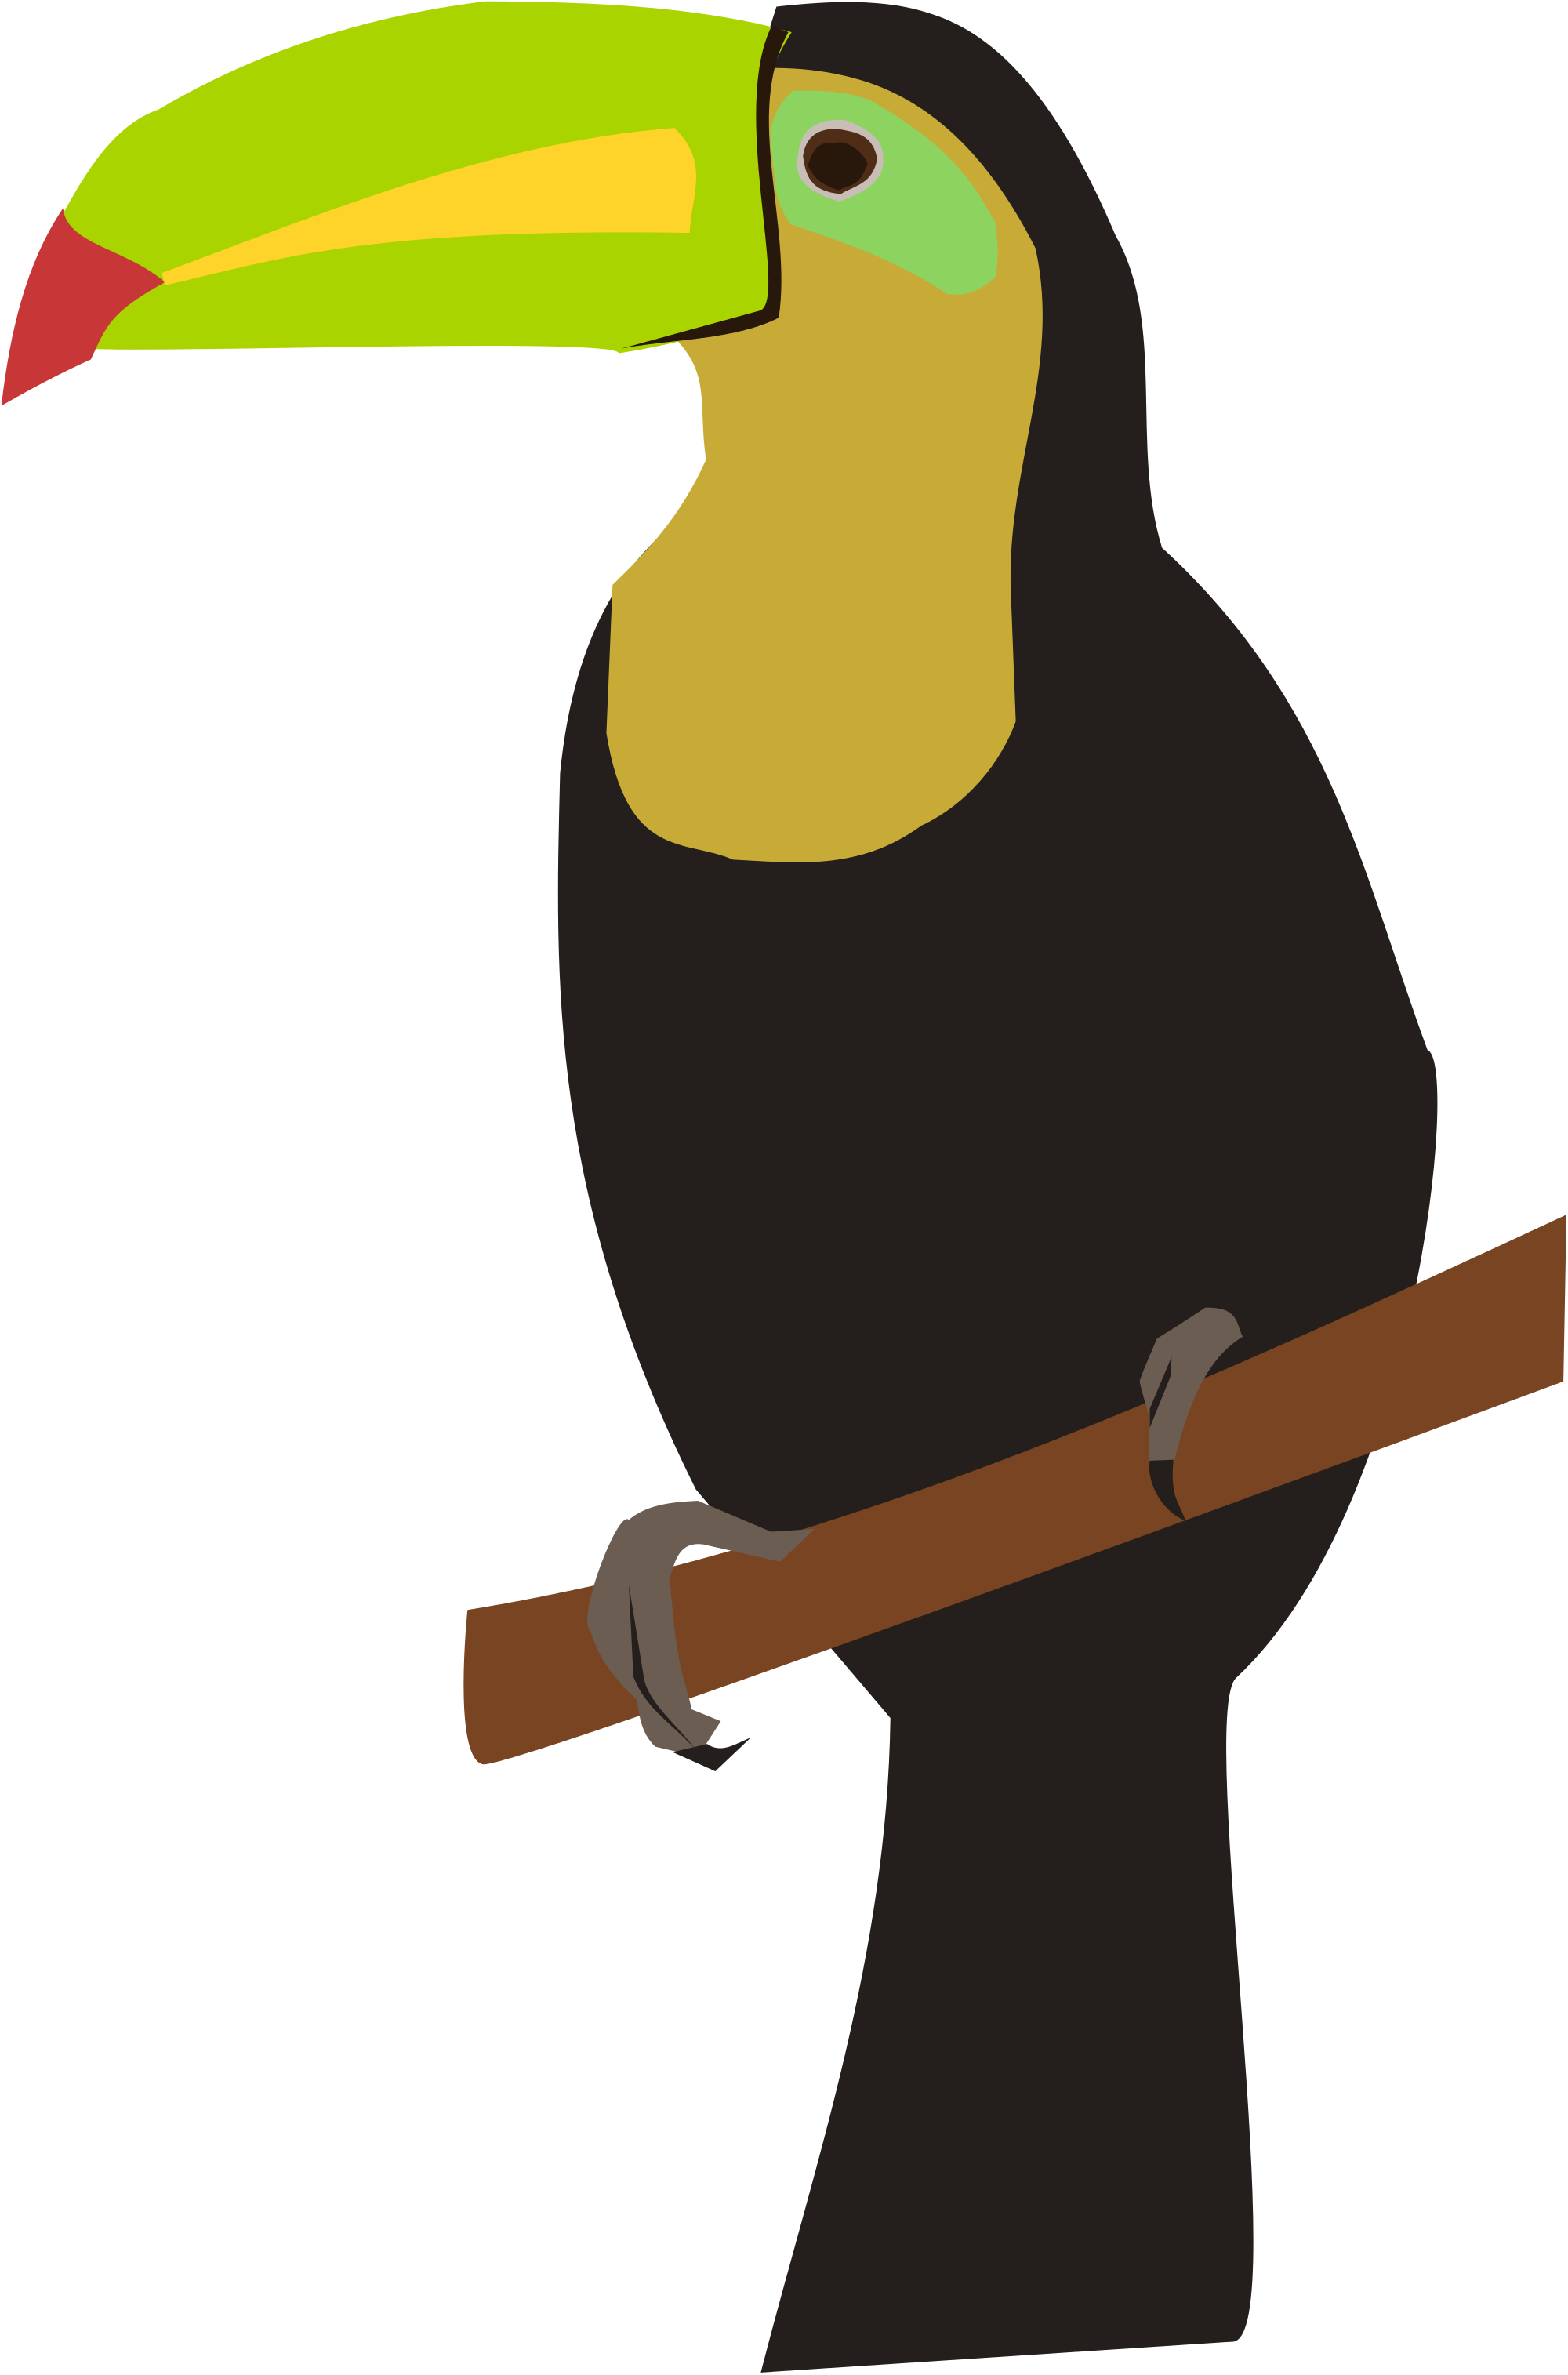 Toucan clipart vector. File svg wikimedia commons